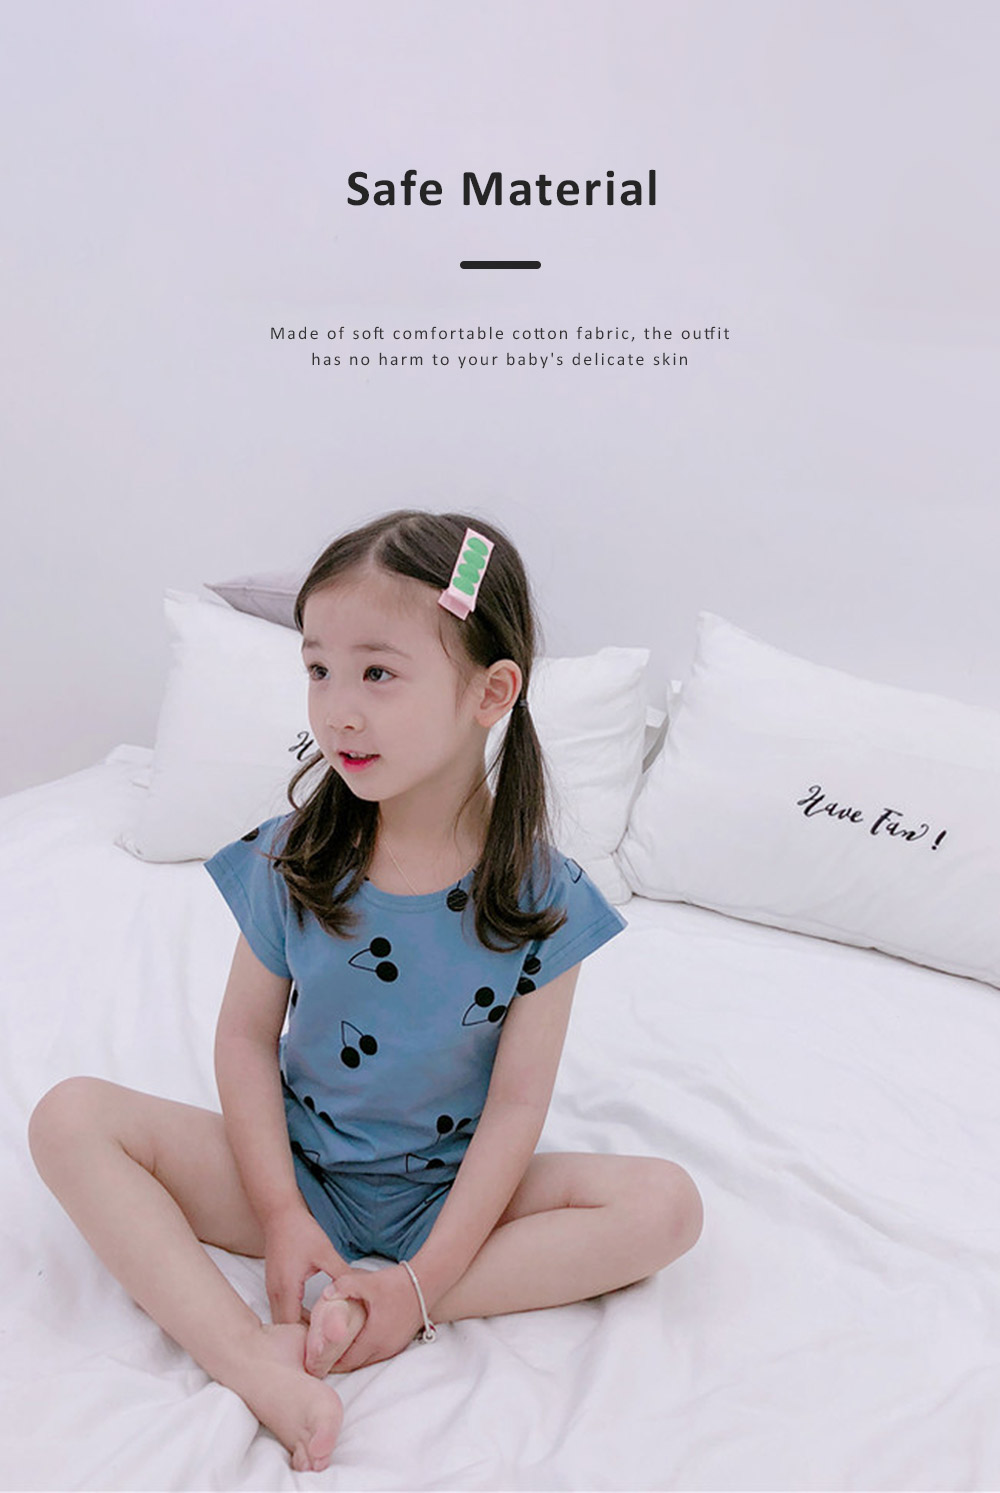 Comfortable Home Clothes Cherry Pattern Short Sleeve Tops Shirts and Shorts Outfits for Kids Girl Boy 4